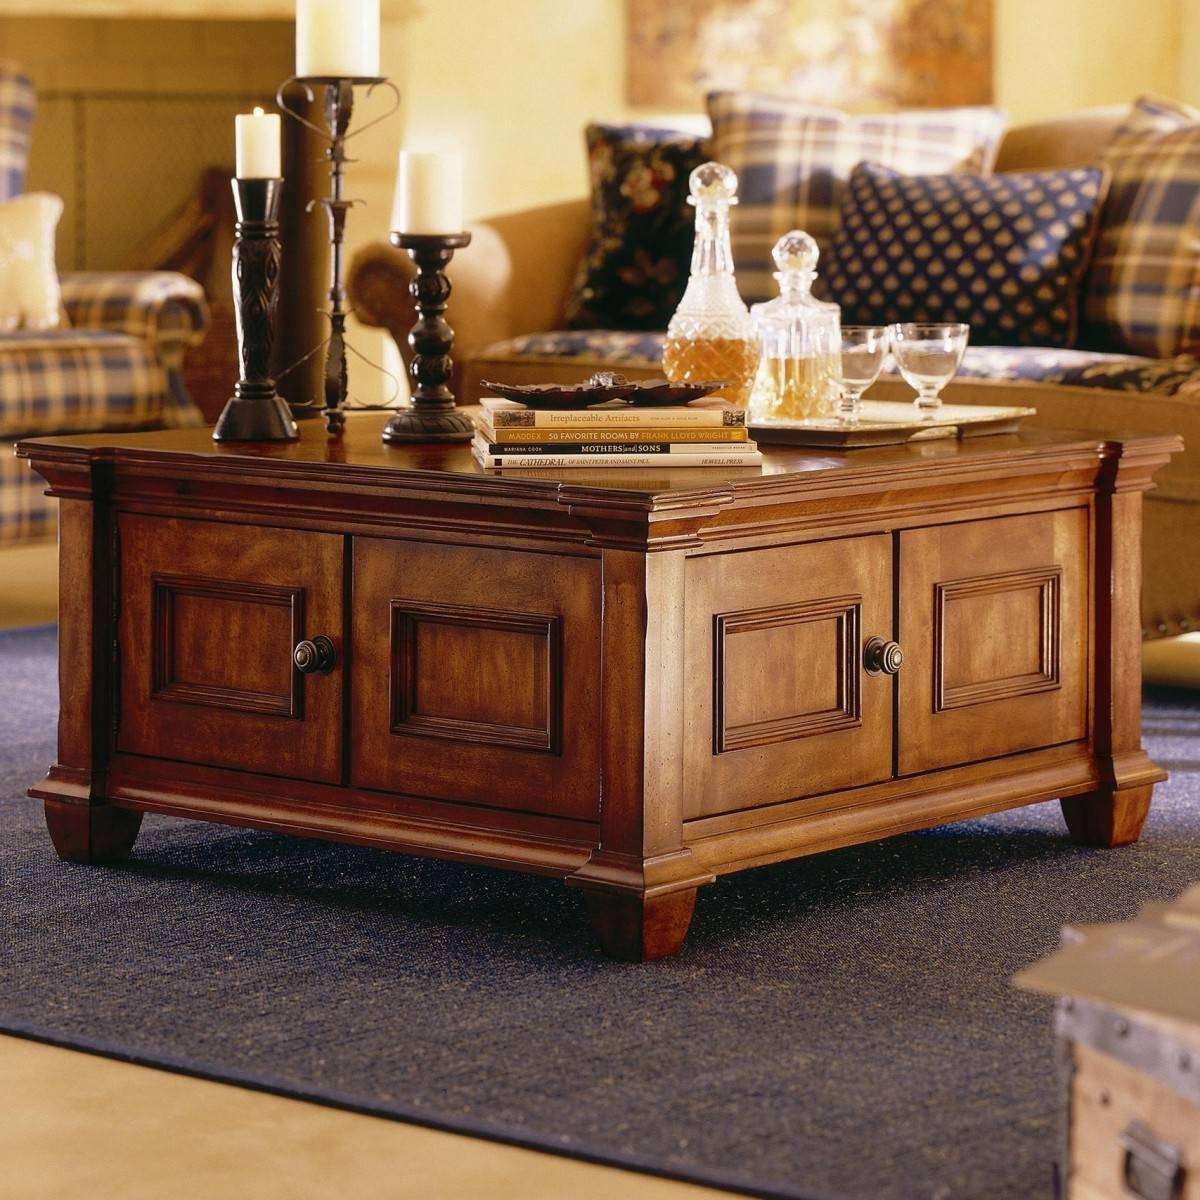 Excellent Square Coffee Tables With Storage Pictures Decoration For Extra Large Rustic Coffee Tables (View 11 of 30)